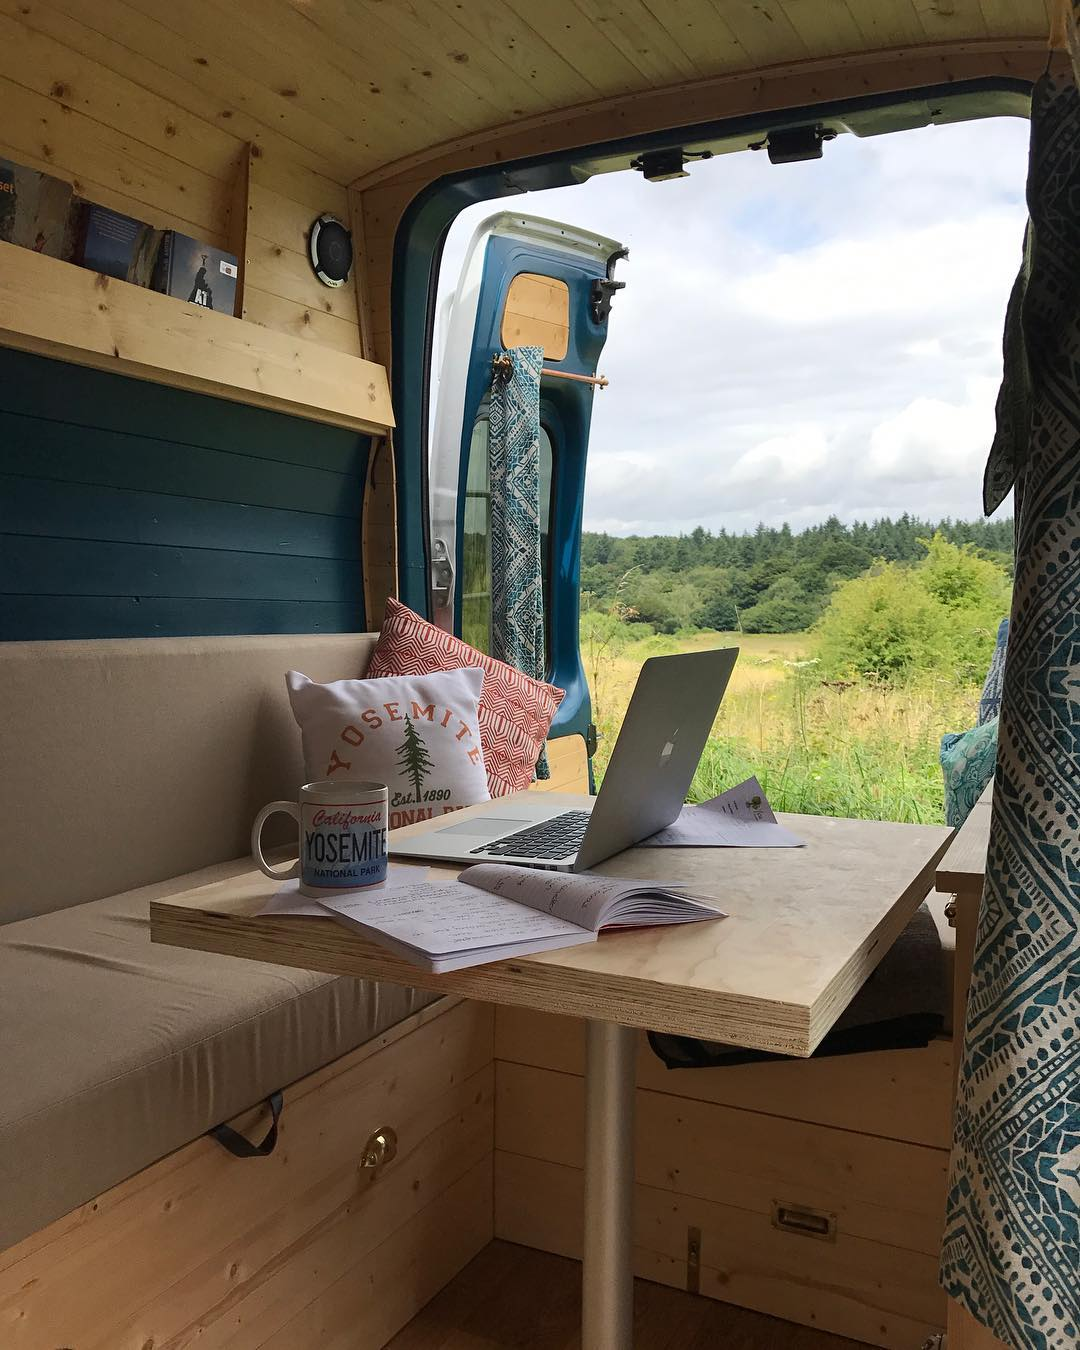 Working as a digital nomad and using a cell signal booster in a camper van conversion or RV